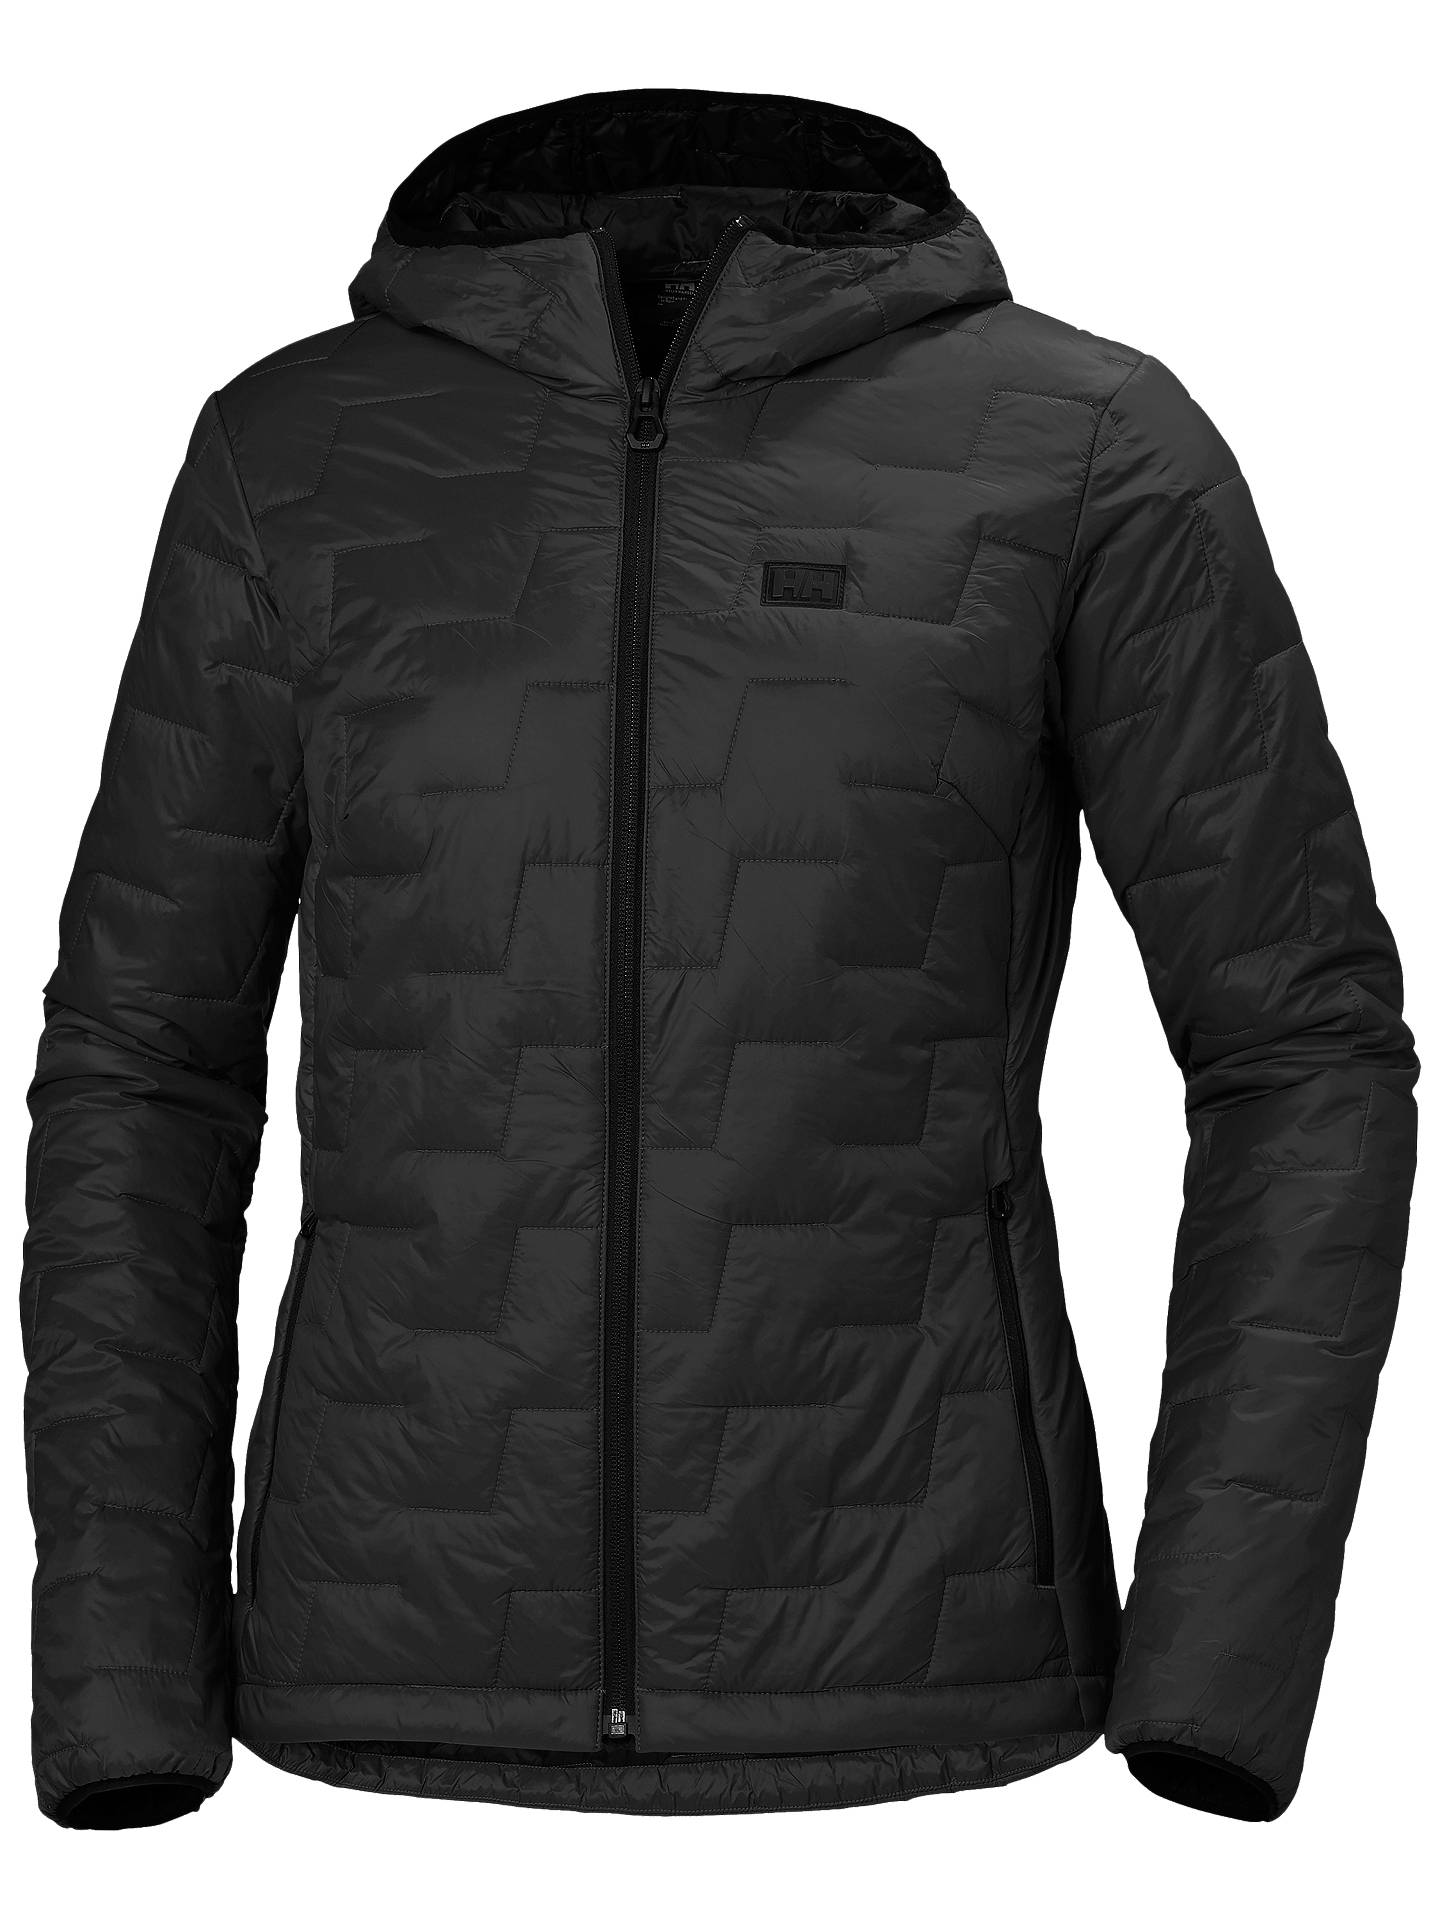 b7de21982a5 BuyHelly Hansen Lifaloft Insulated Women s Outdoor Hooded Jacket